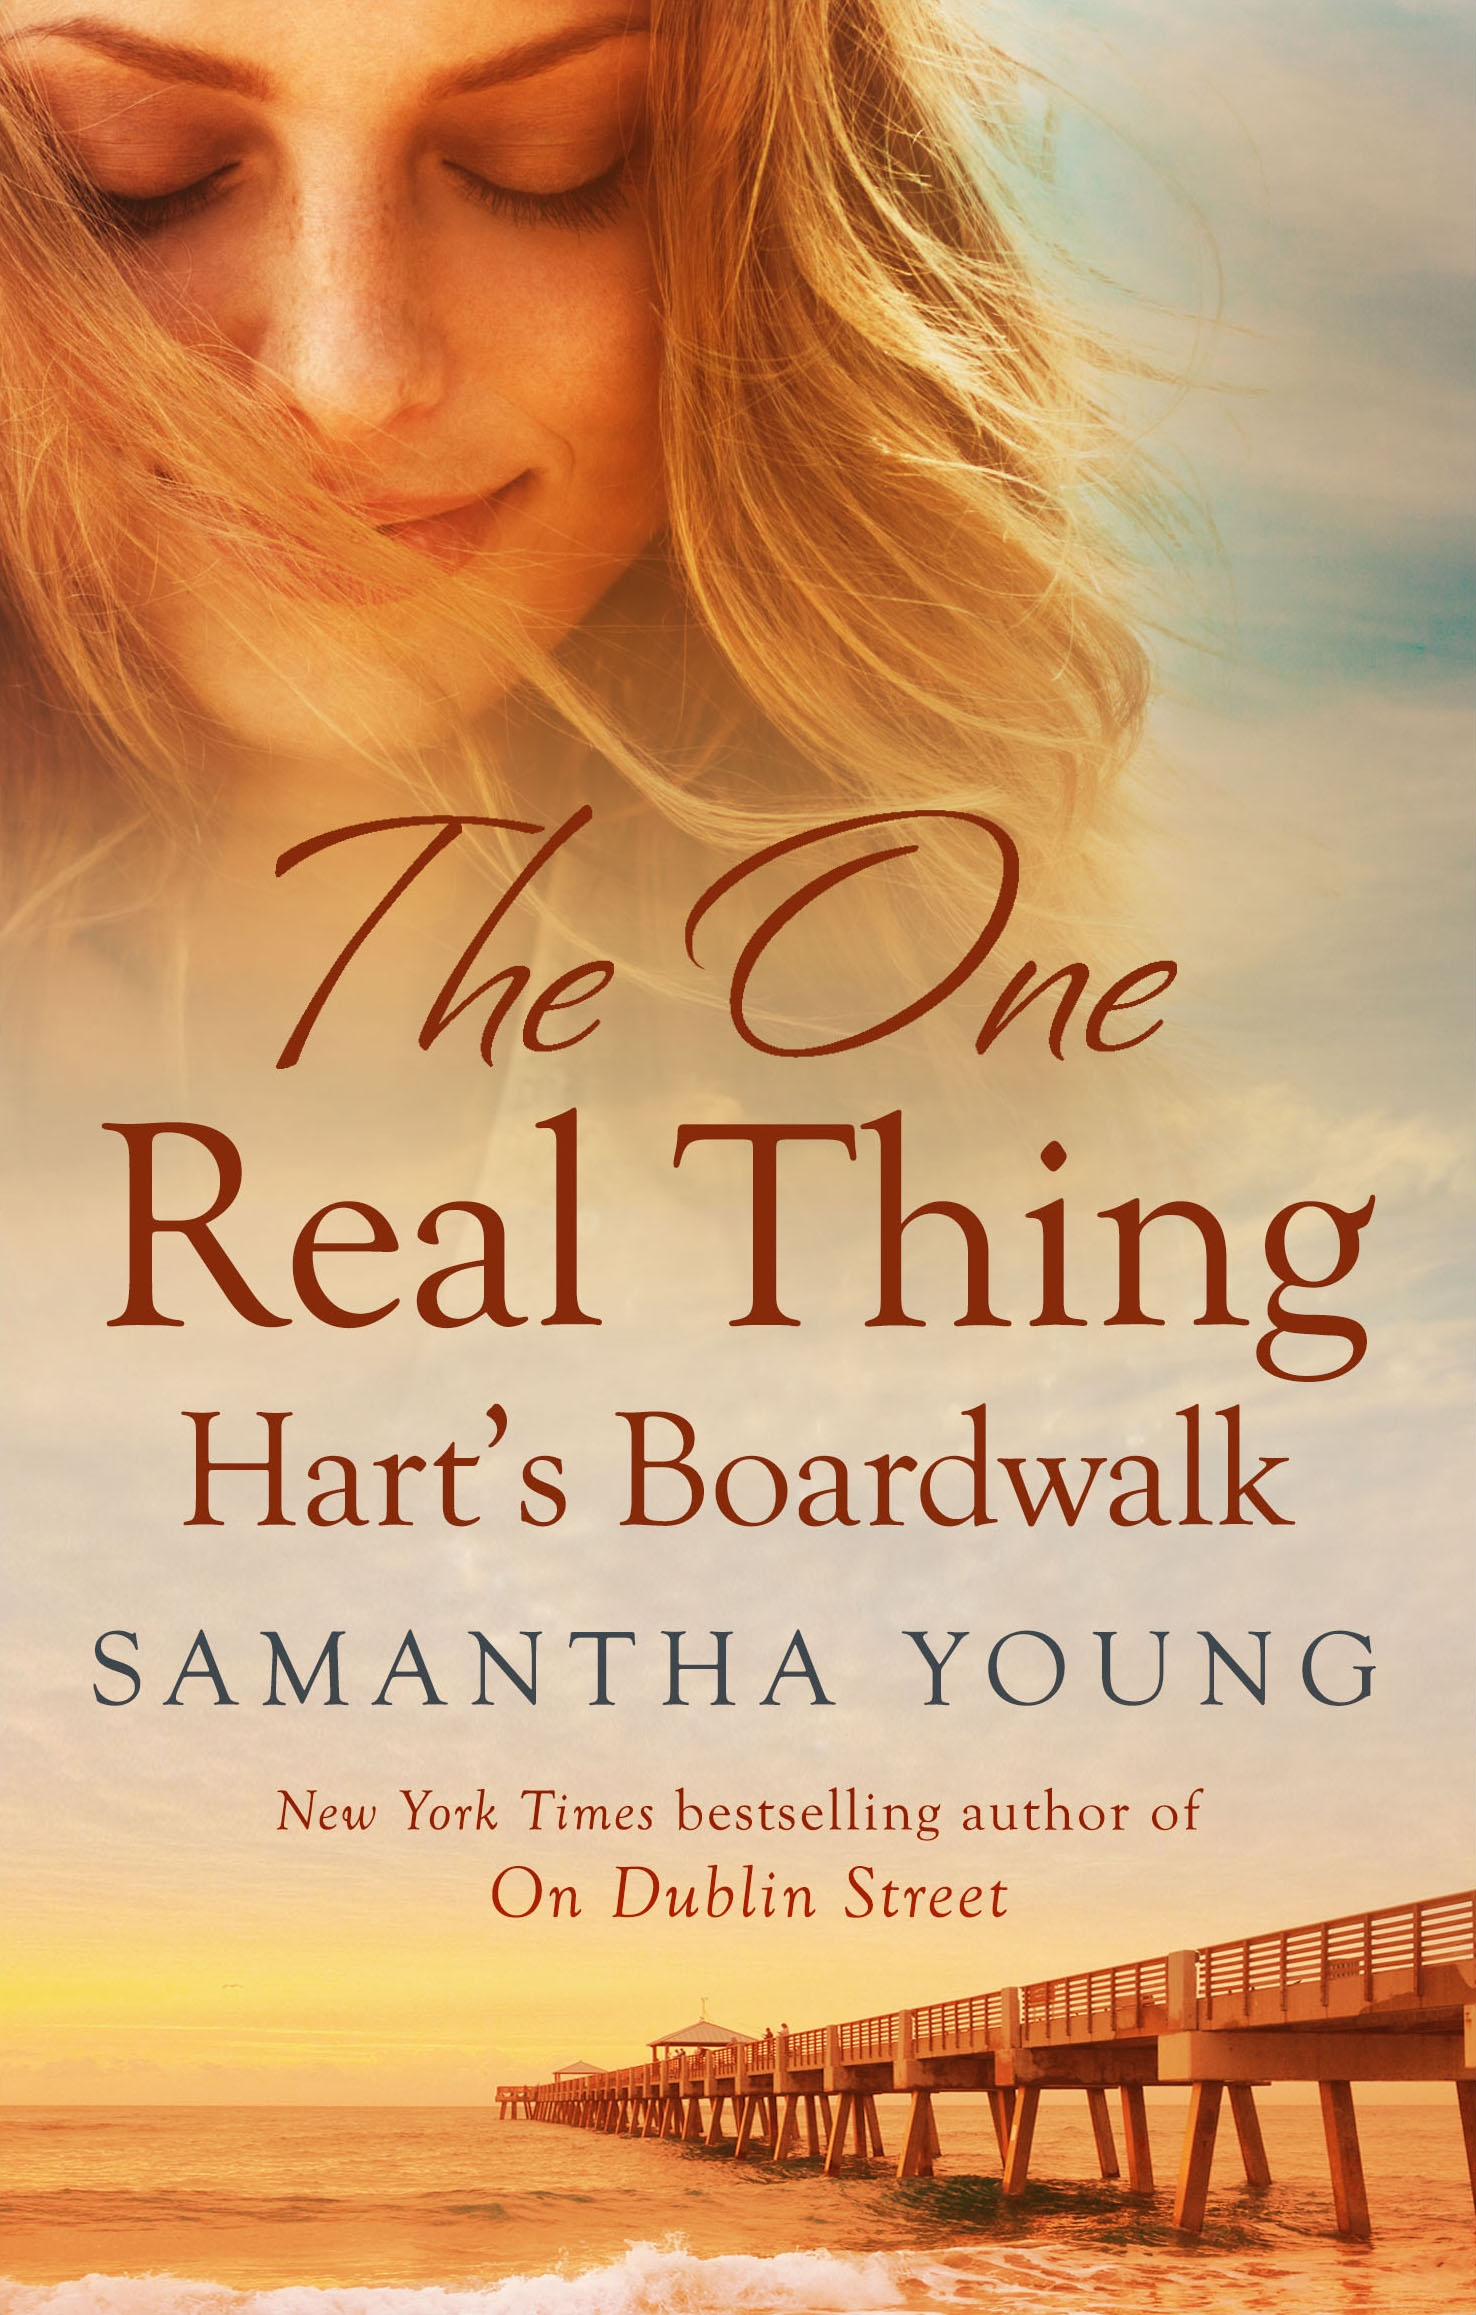 Samantha young on dublin street goodreads giveaways